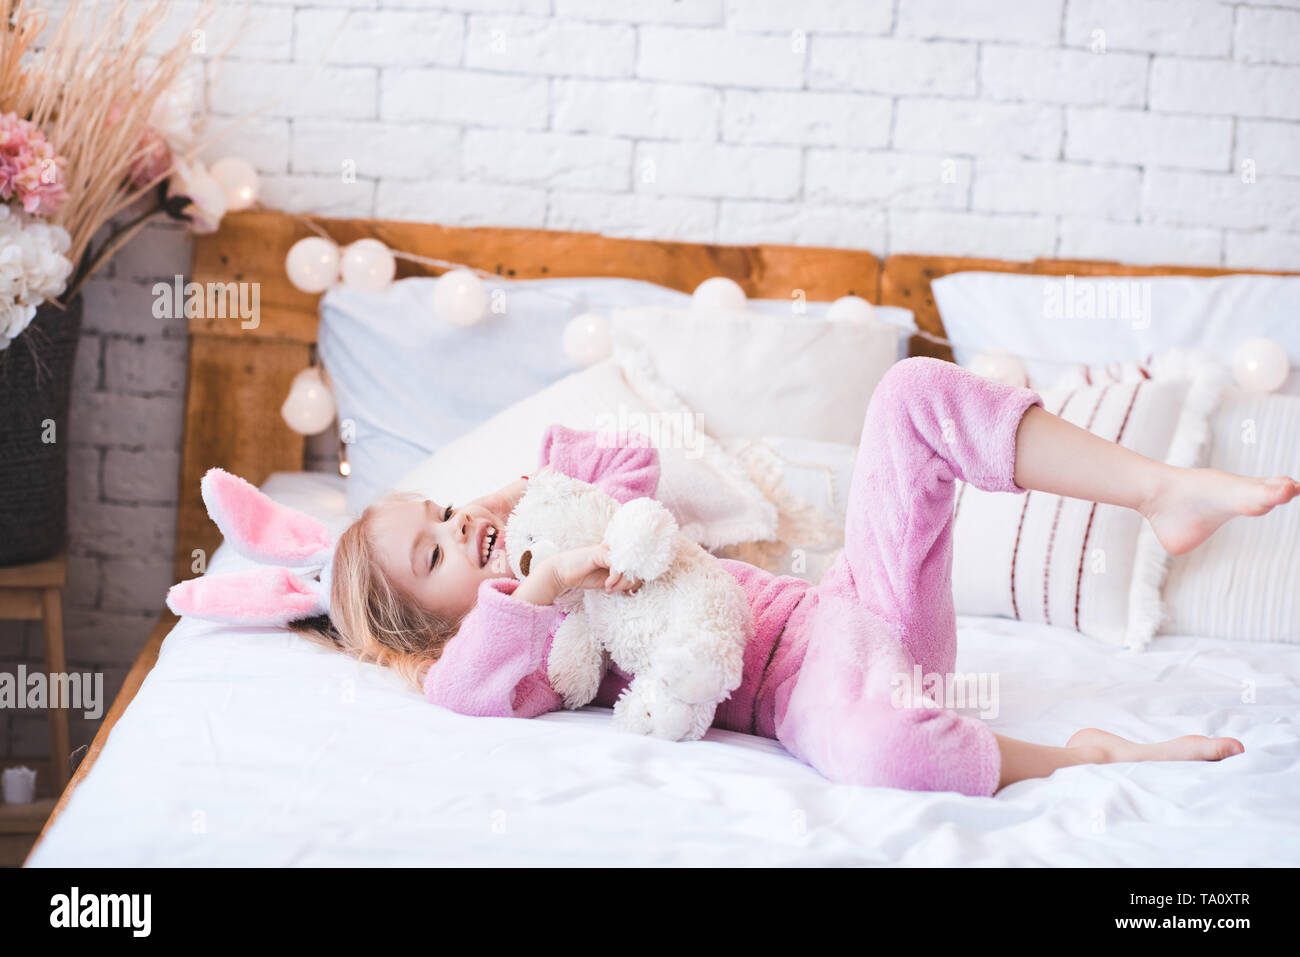 Smiling baby girl 4-5 year old lying in bed with teddy bear in room. Good morning. Childhood. - Stock Image